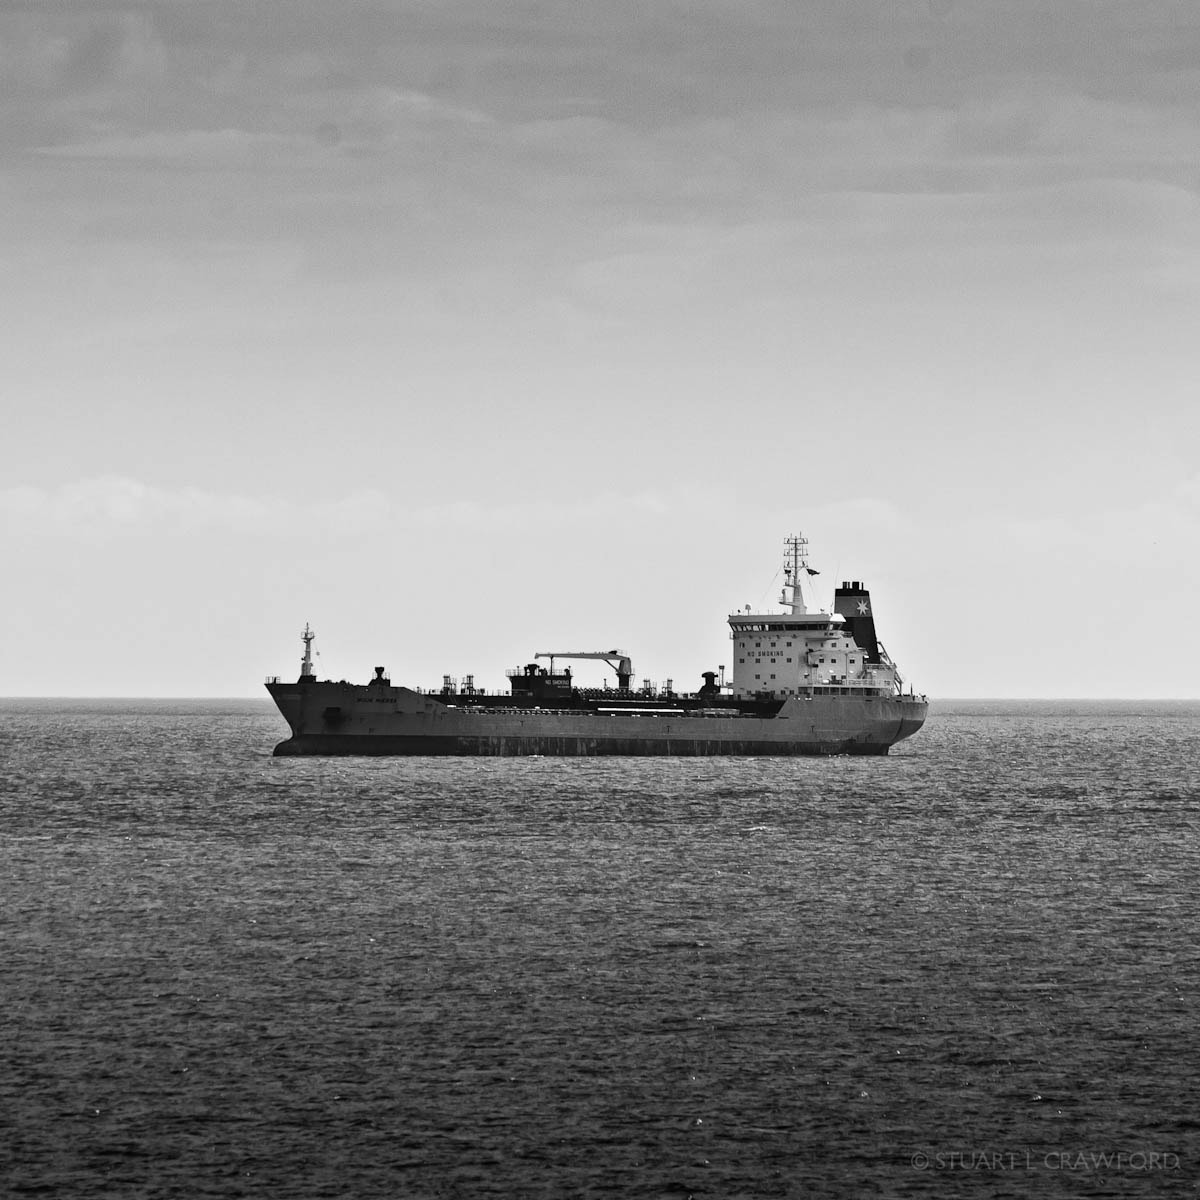 Photograph Tanker by Stuart Crawford on 500px